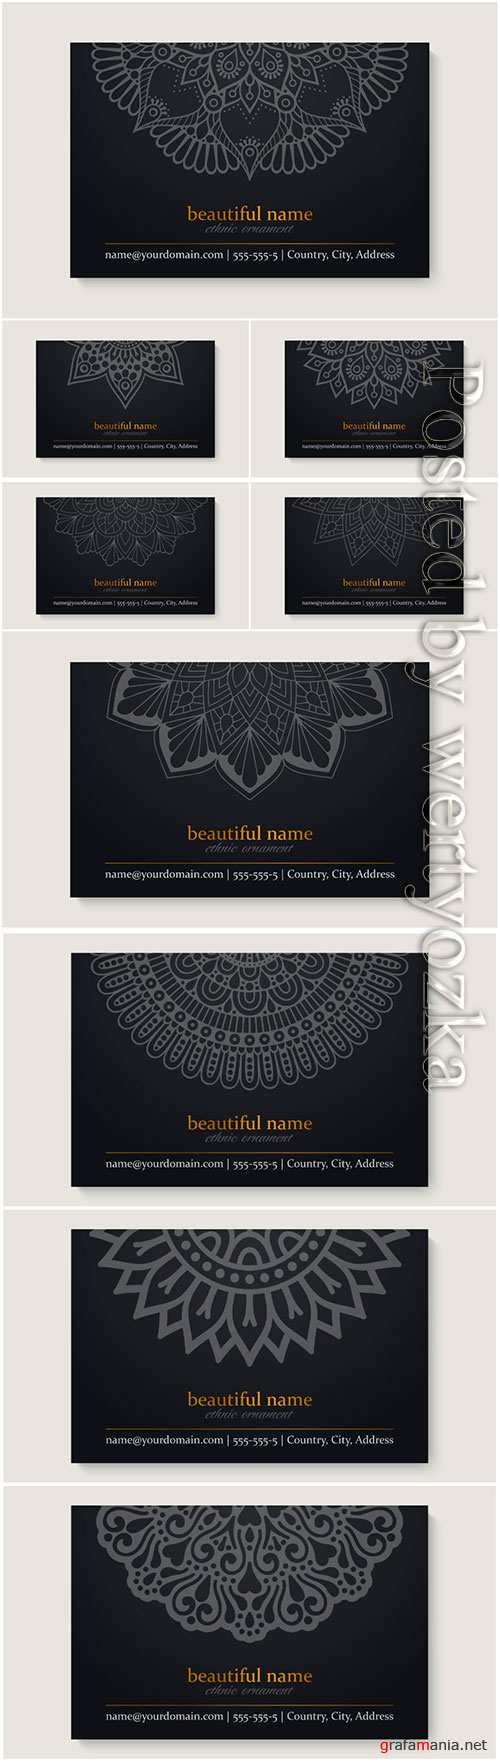 Business vector card template with ethnic mandala design